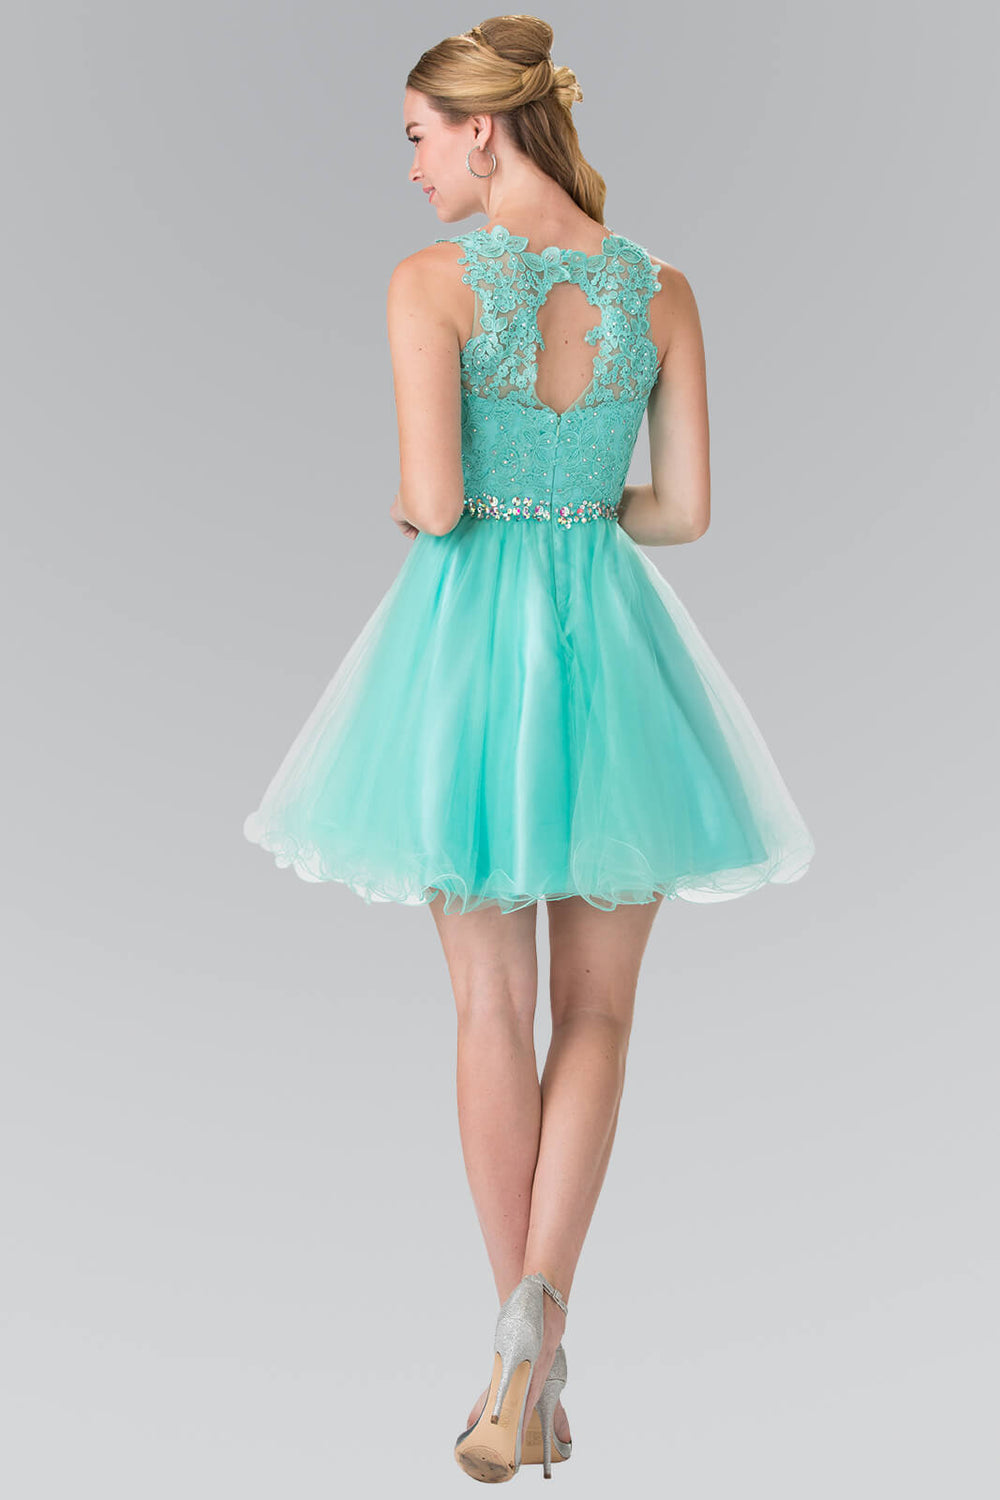 Sleeveless Prom Short Dress Homecoming - The Dress Outlet